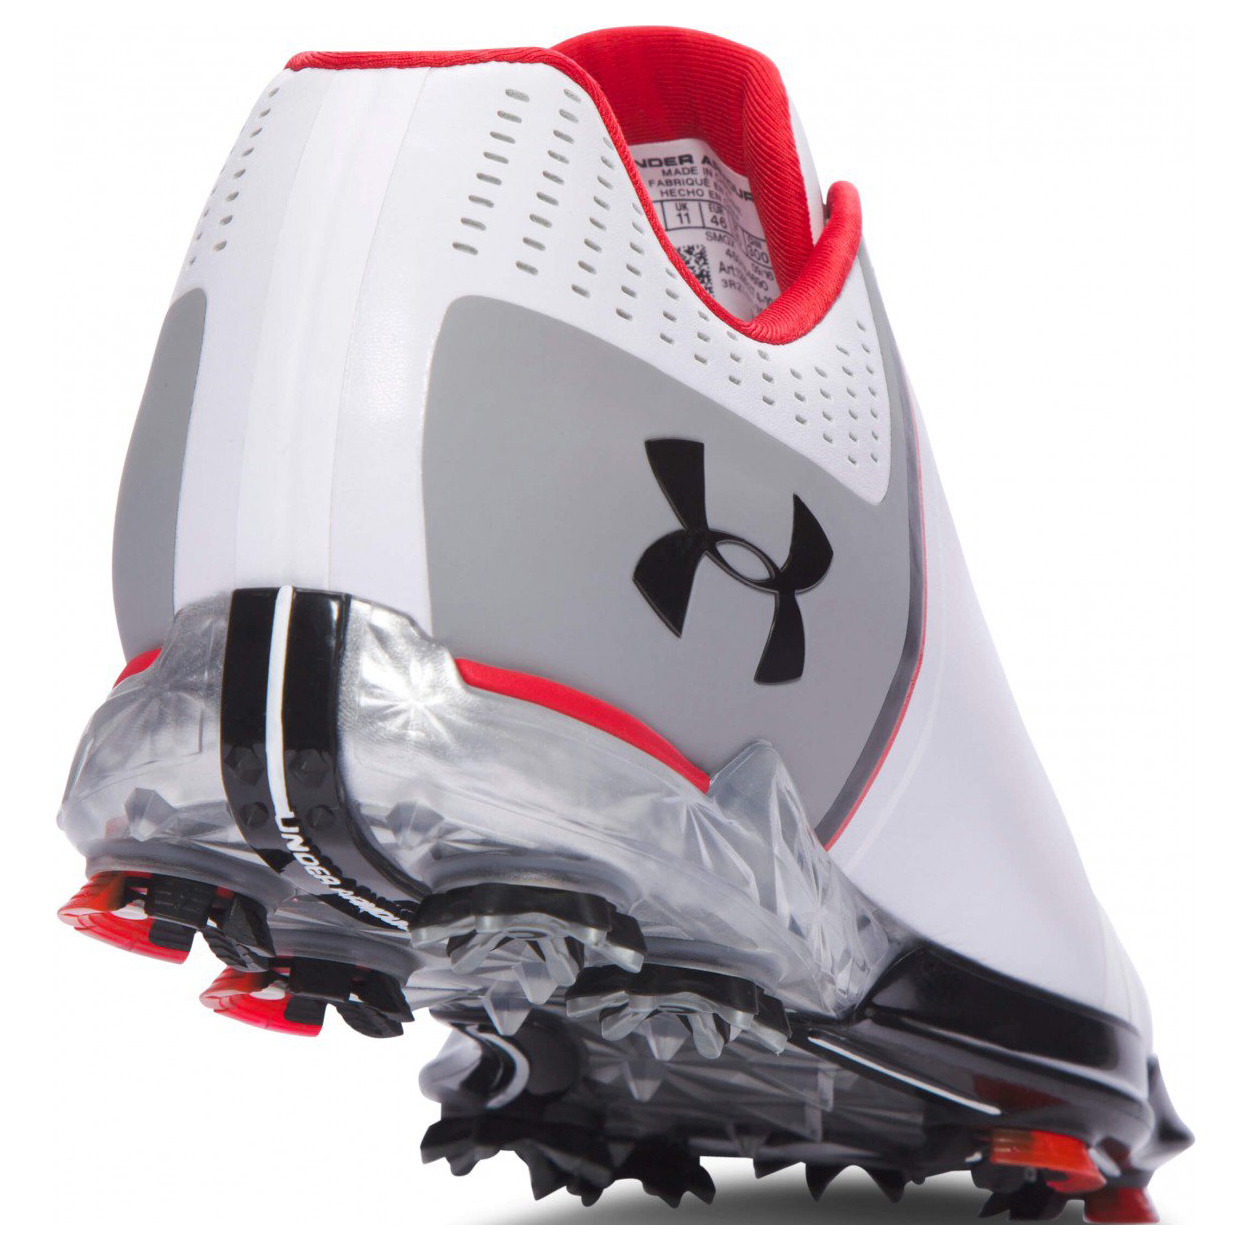 Under-Armour-Men-039-s-Spieth-I-Golf-Shoes-Brand-New thumbnail 18